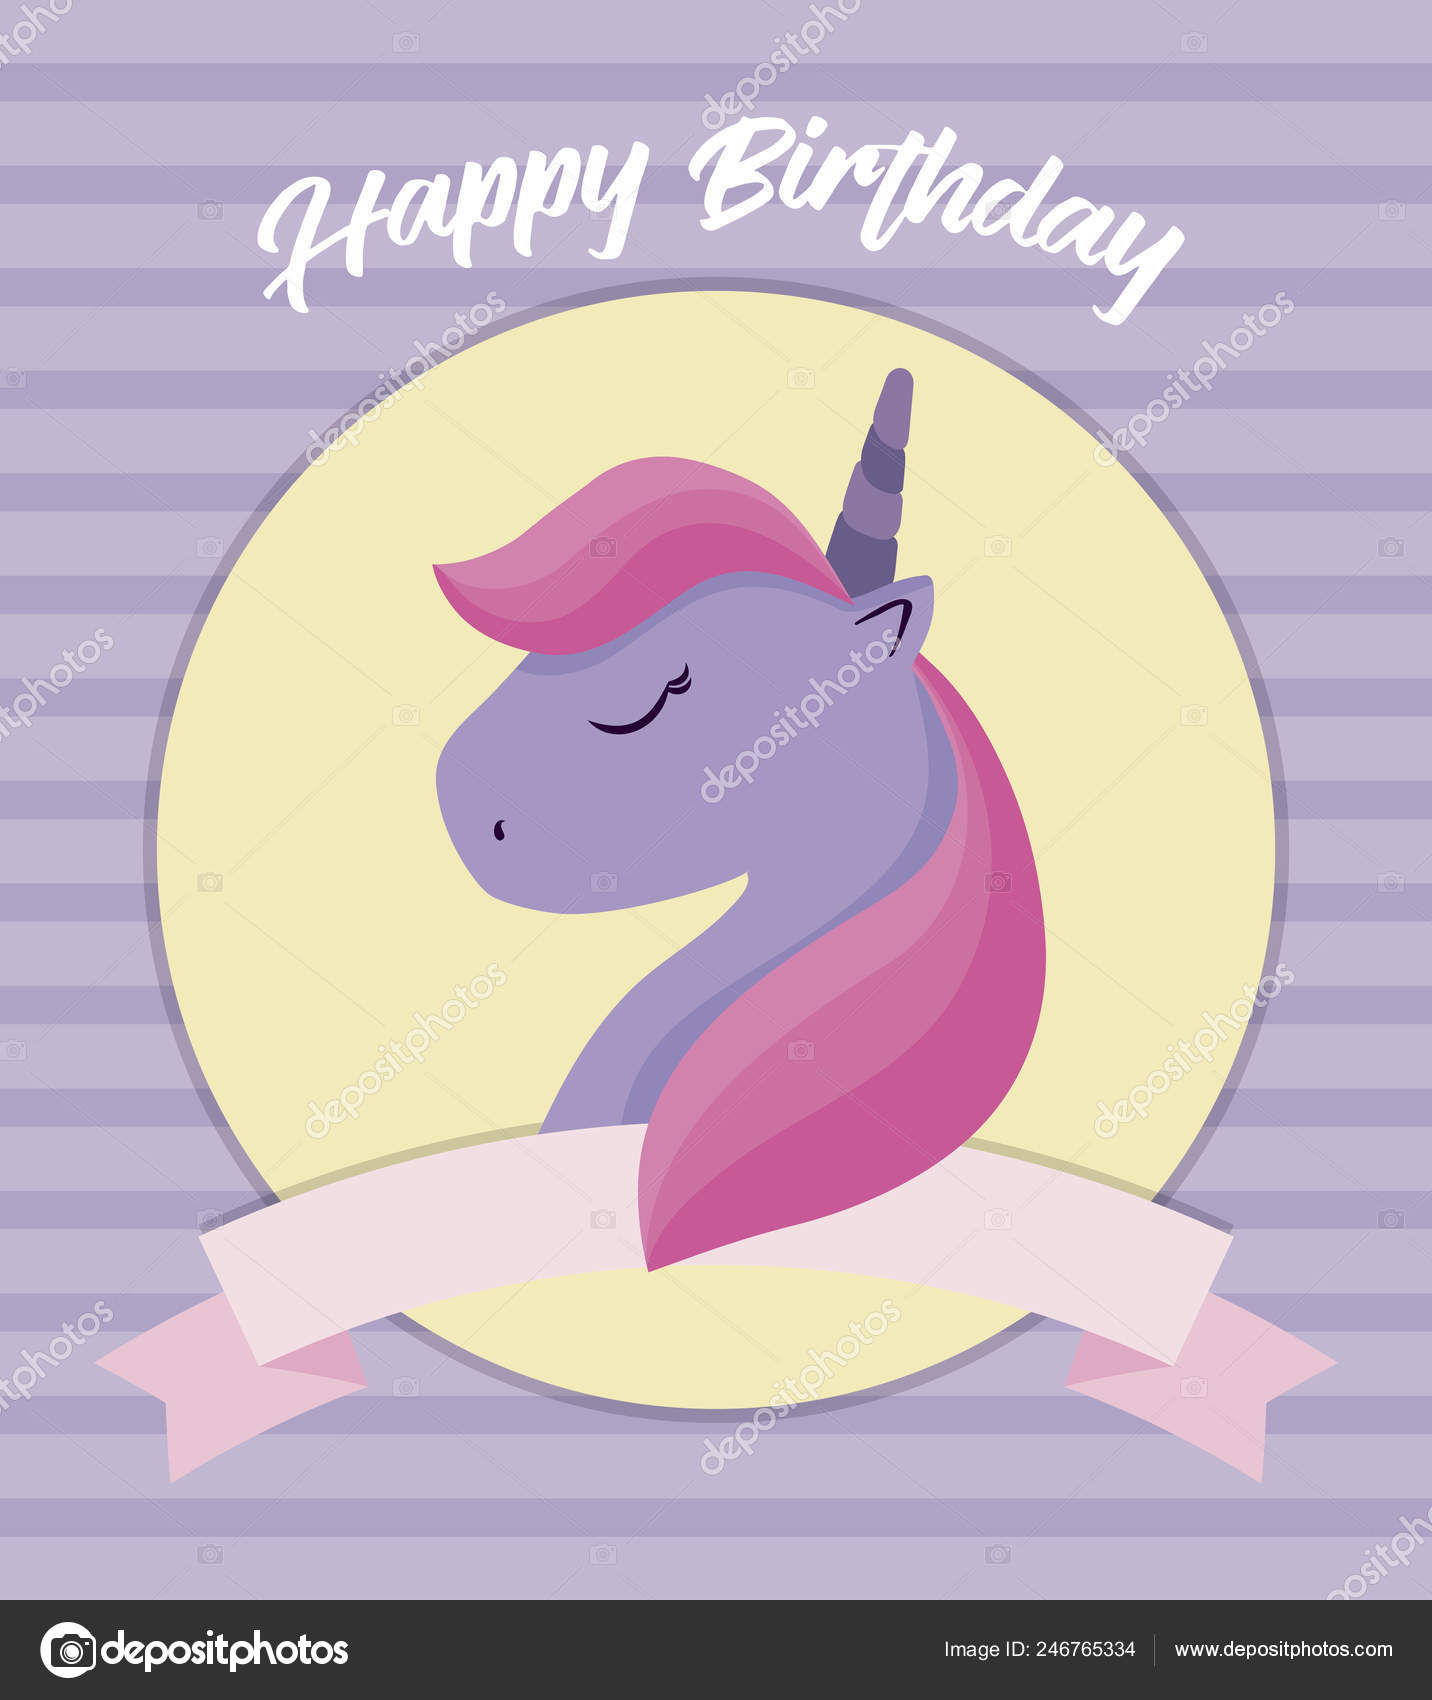 Happy Birthday Card With Cute Unicorn Head Stock Vector C Djv